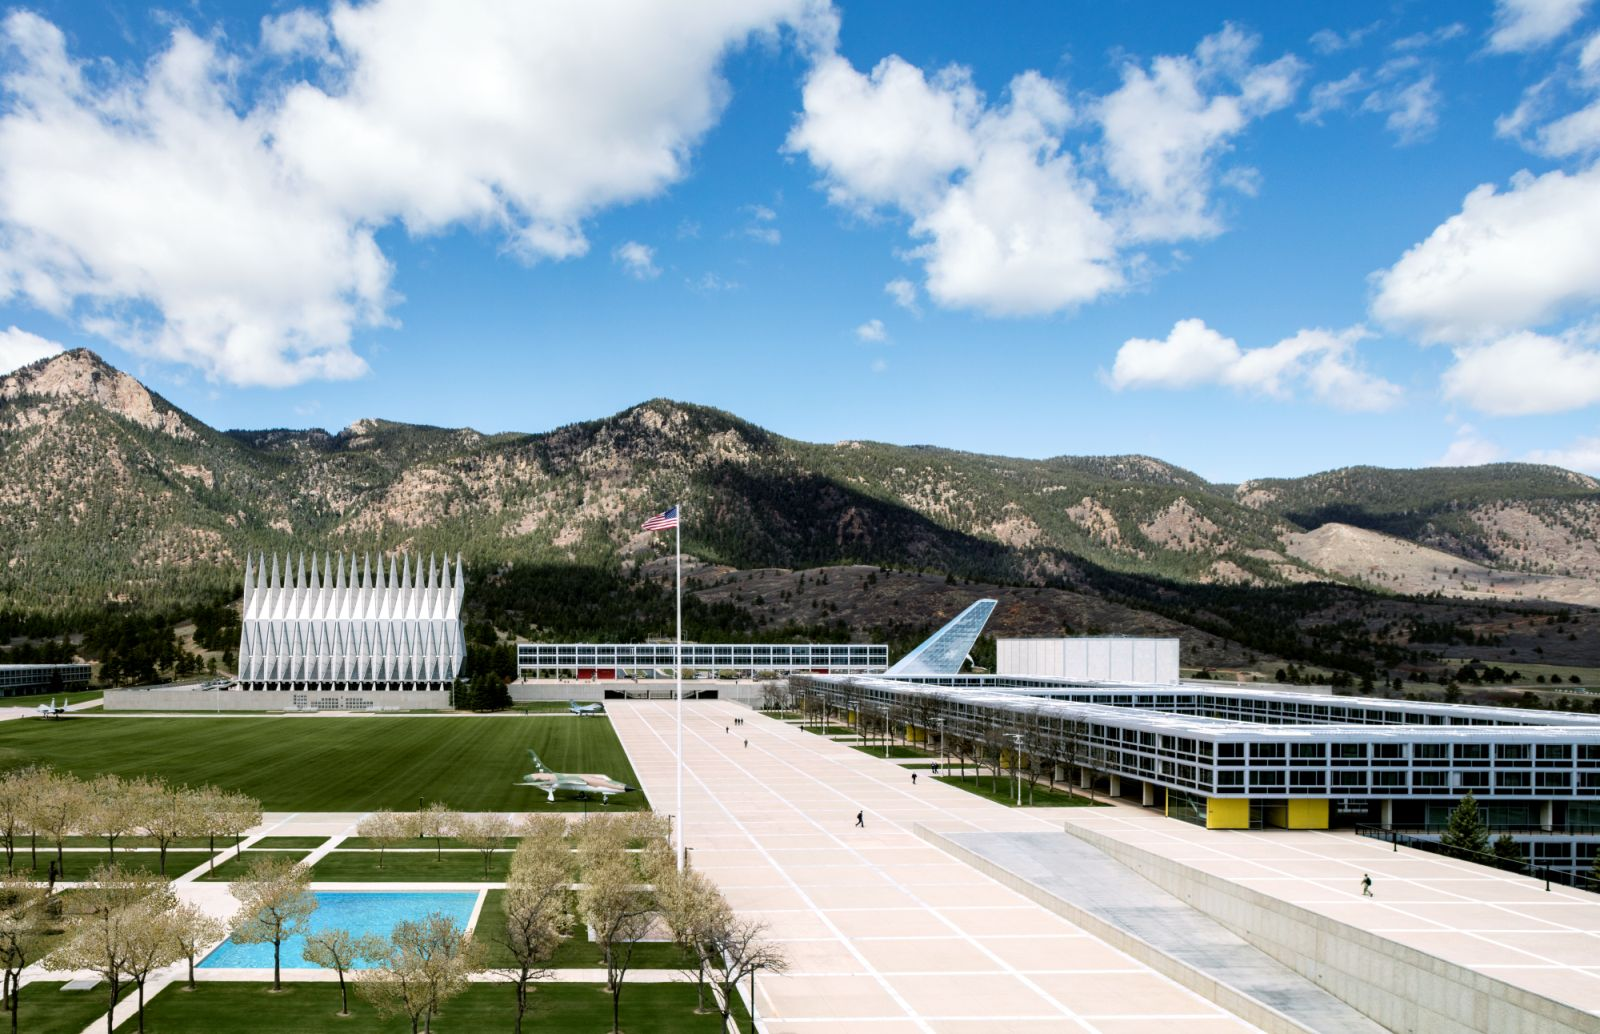 US Air Force Academy Center for Character and Leadership Development